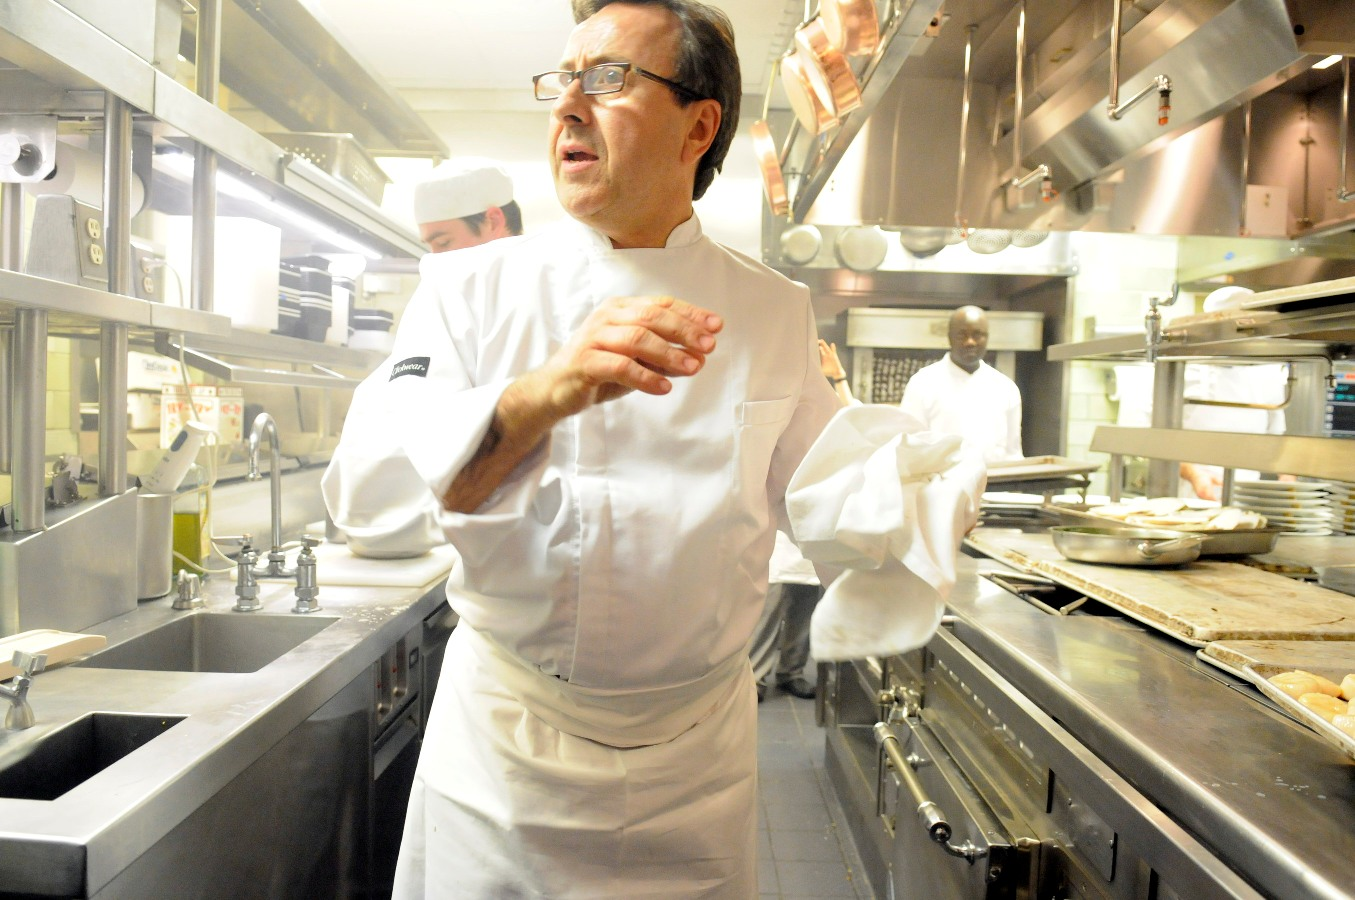 Daniel Boulud 32 Star Dinner 2010 In His Kitchen